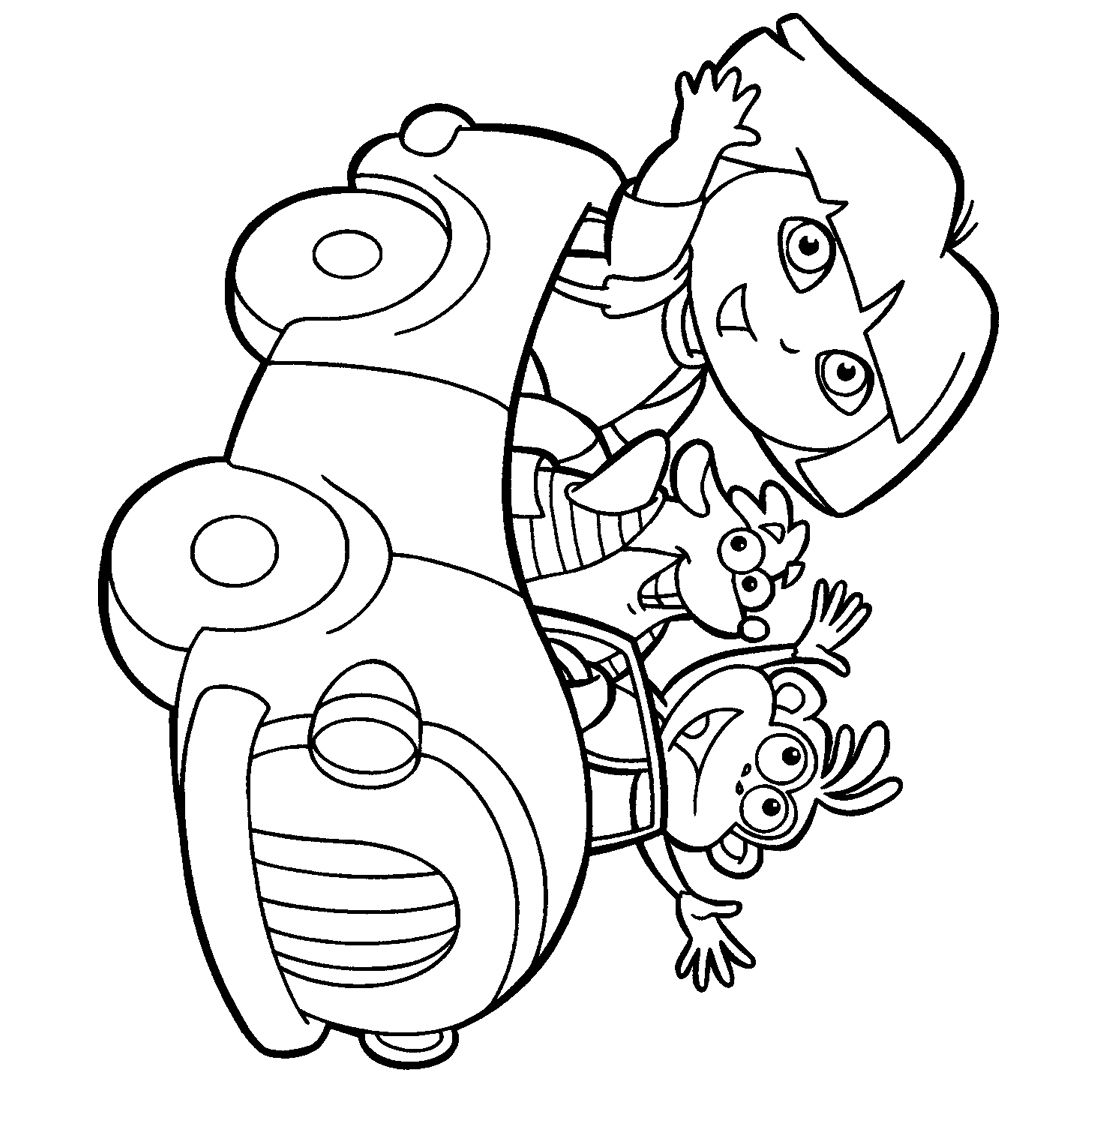 Dora Printable Coloring Pages for Kids - TsumTsumPlush.com Place to ...